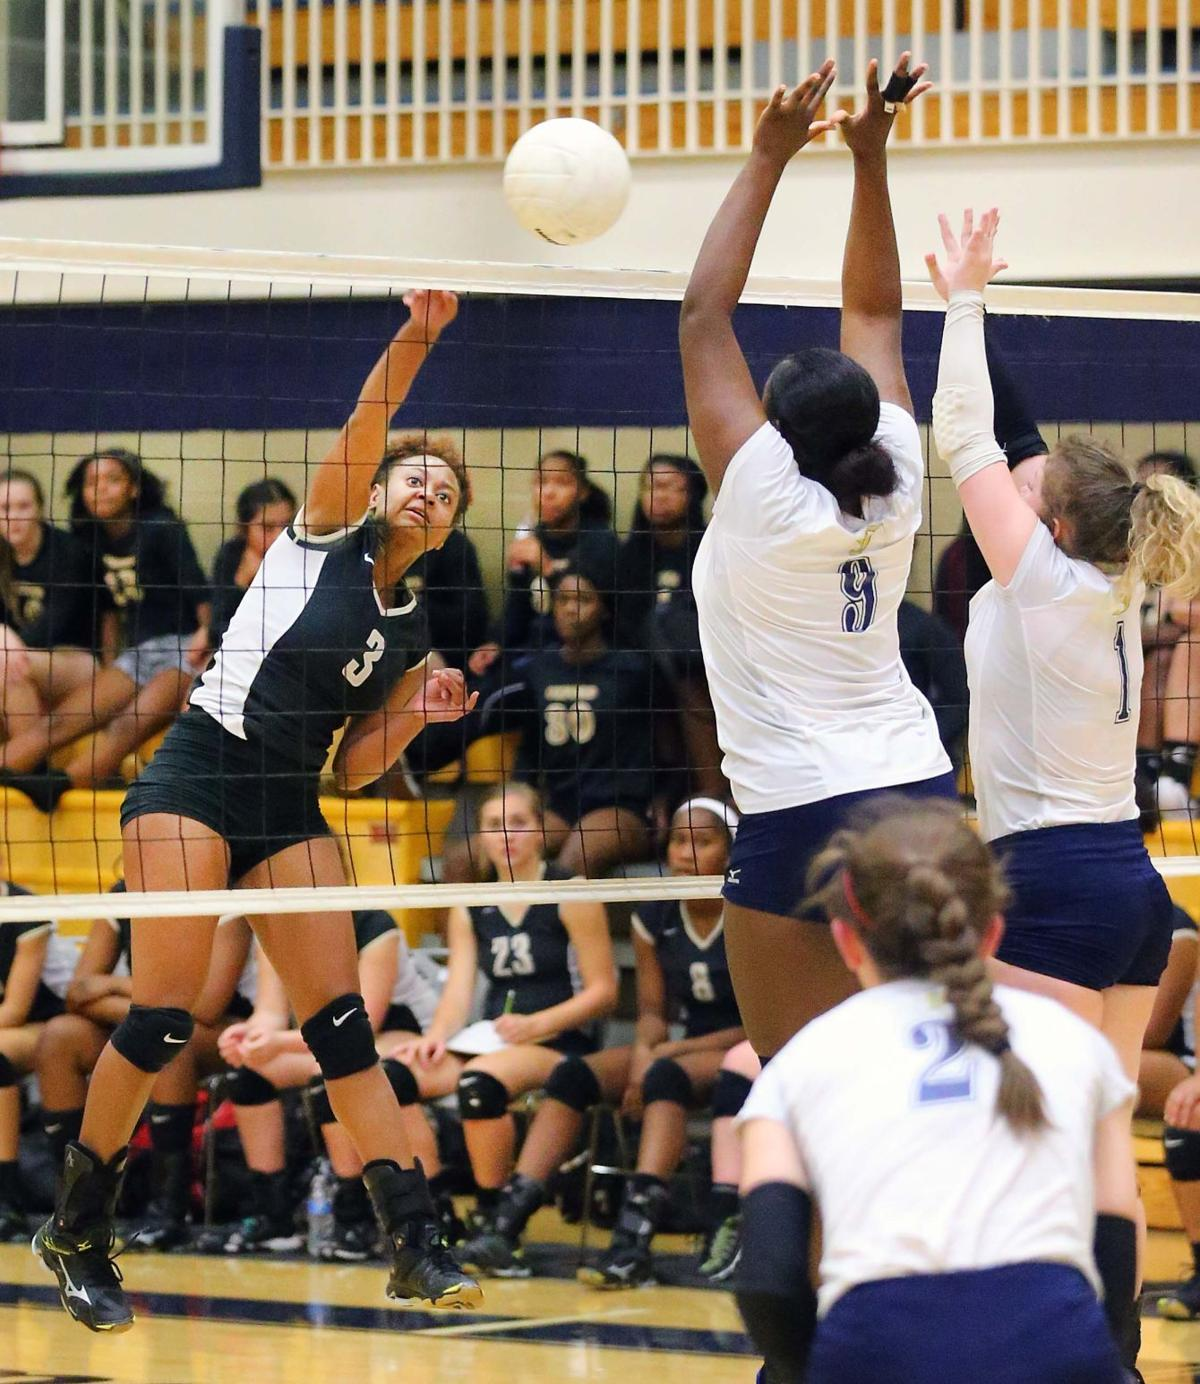 Oxford at Jax volleyball